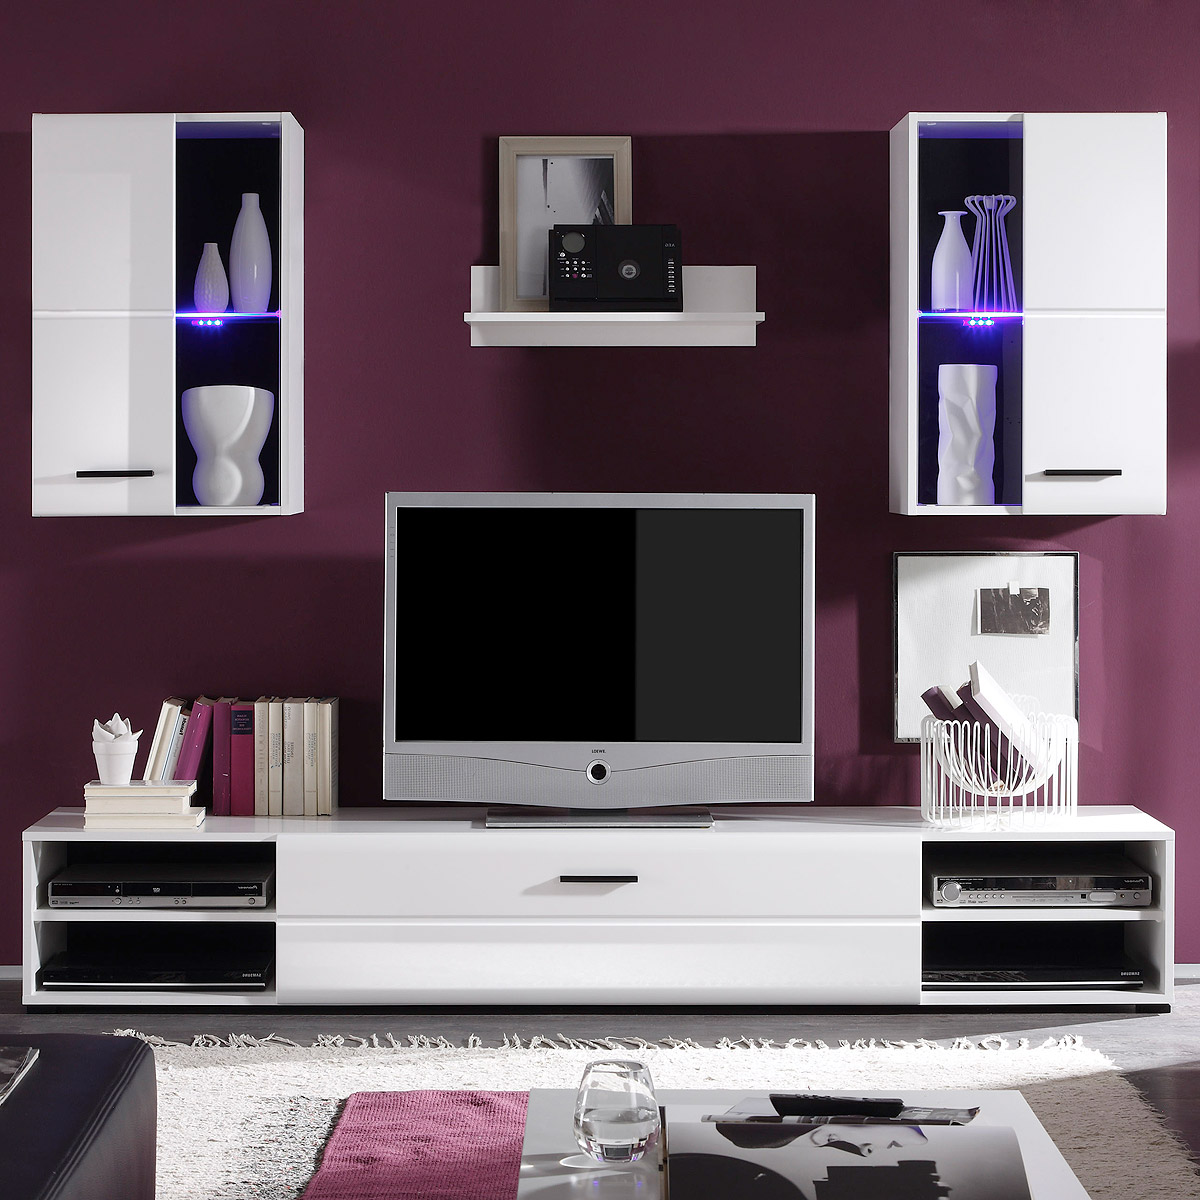 wohnwand final lux anbauwand wohnzimmer schrankwand in wei vitrinen mit led eur 139 95. Black Bedroom Furniture Sets. Home Design Ideas